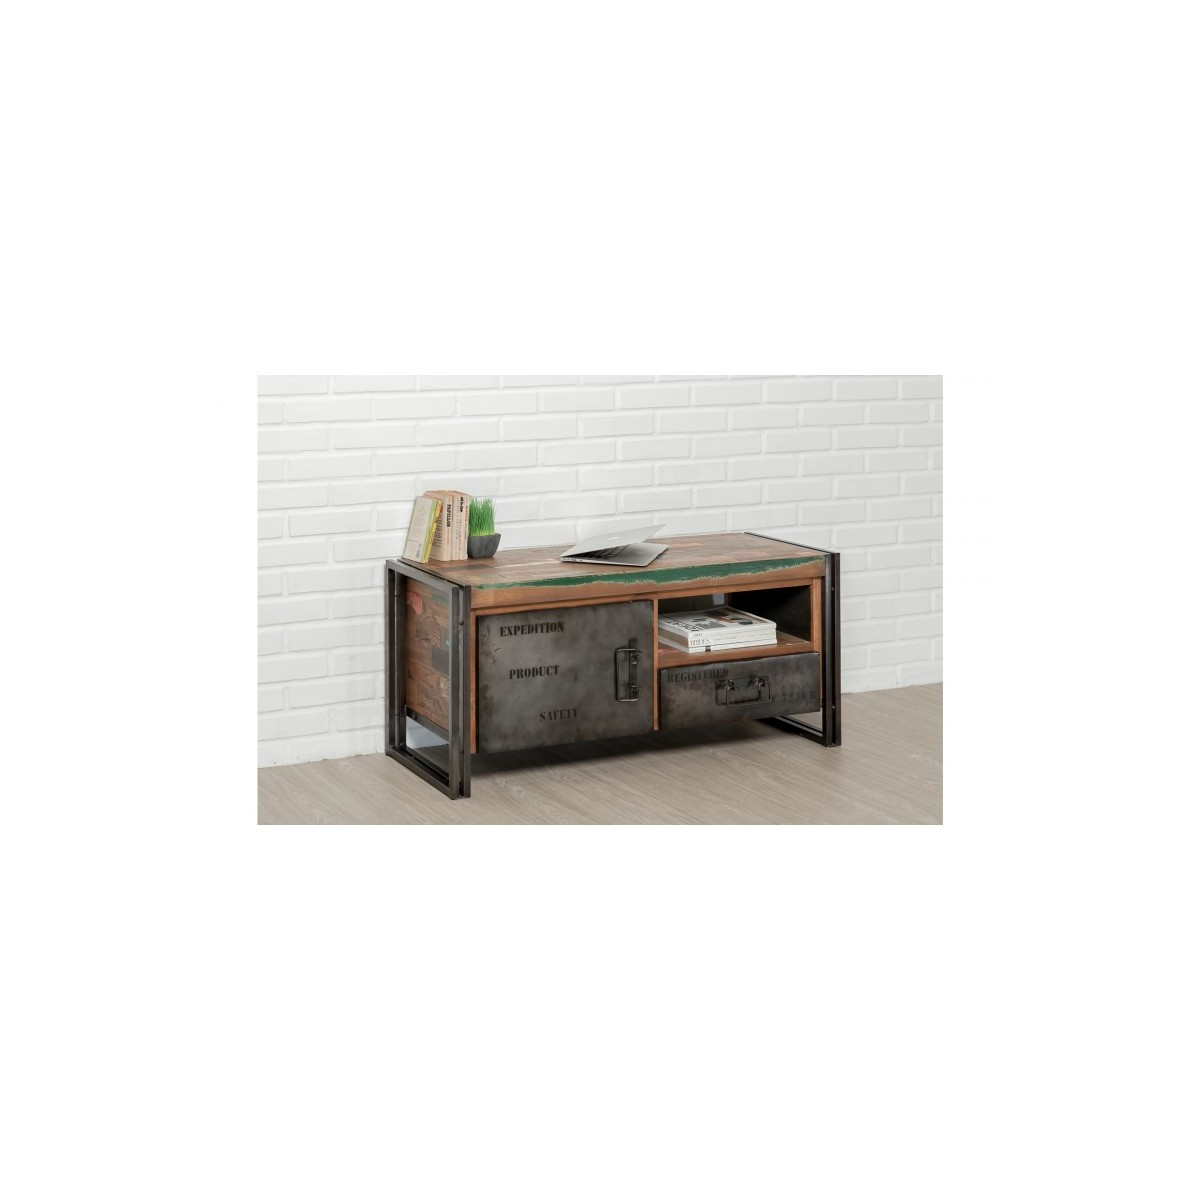 furnished 1 door 1 low tv niche 1 industrial drawer 110 cm noah massive teak recycled and metal amp story 5417